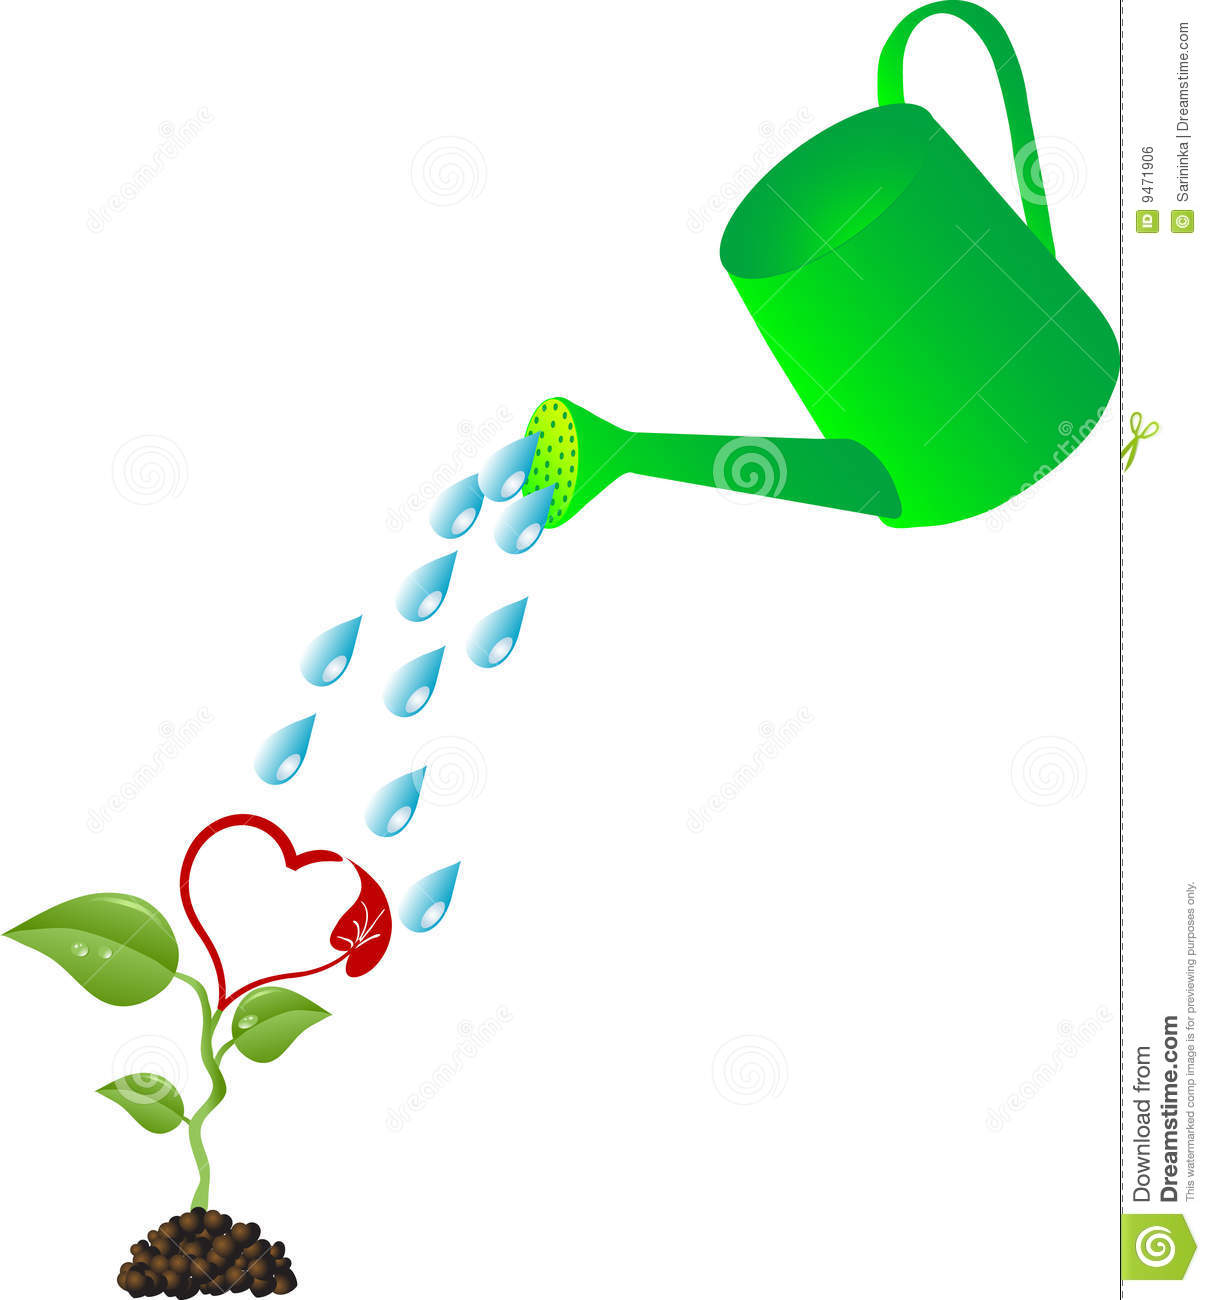 Watering Can Royalty Free Stock Image - Image: 9471906